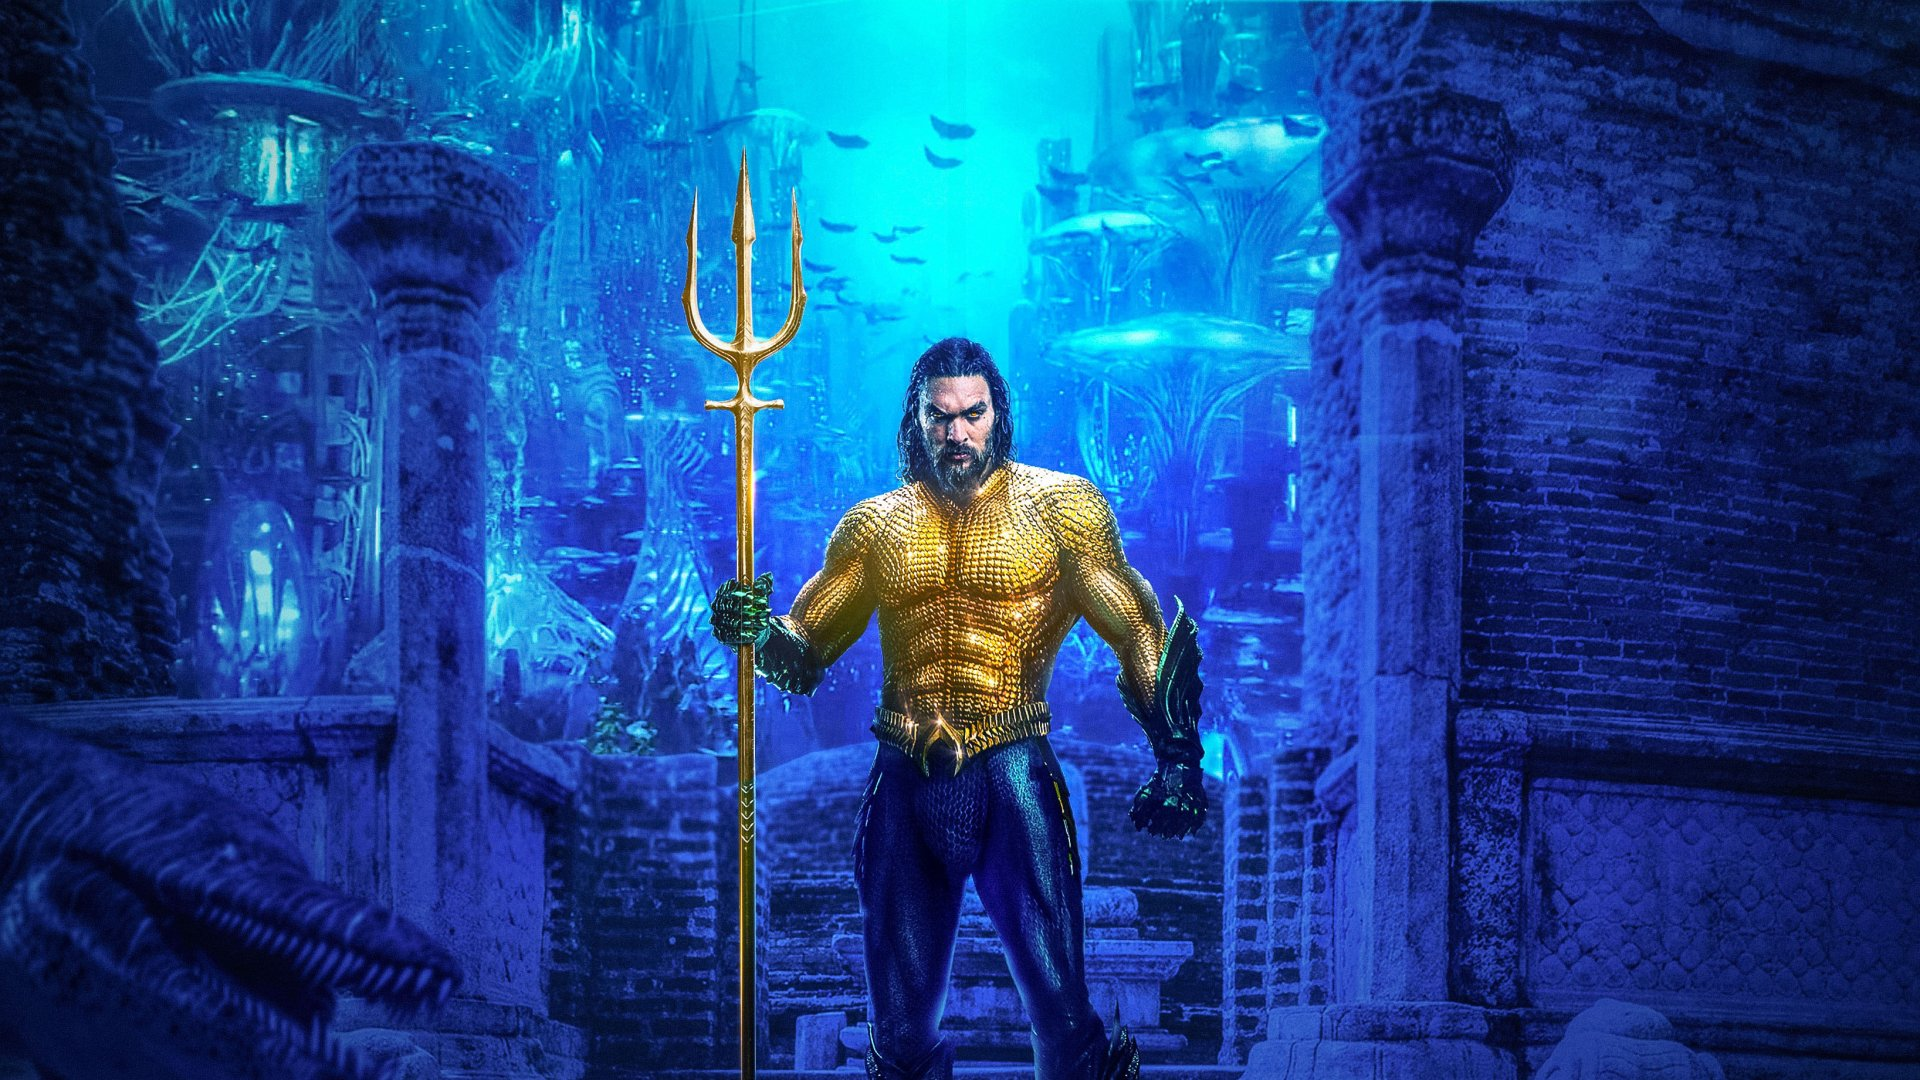 Aquaman 2 Release Date and Trailer